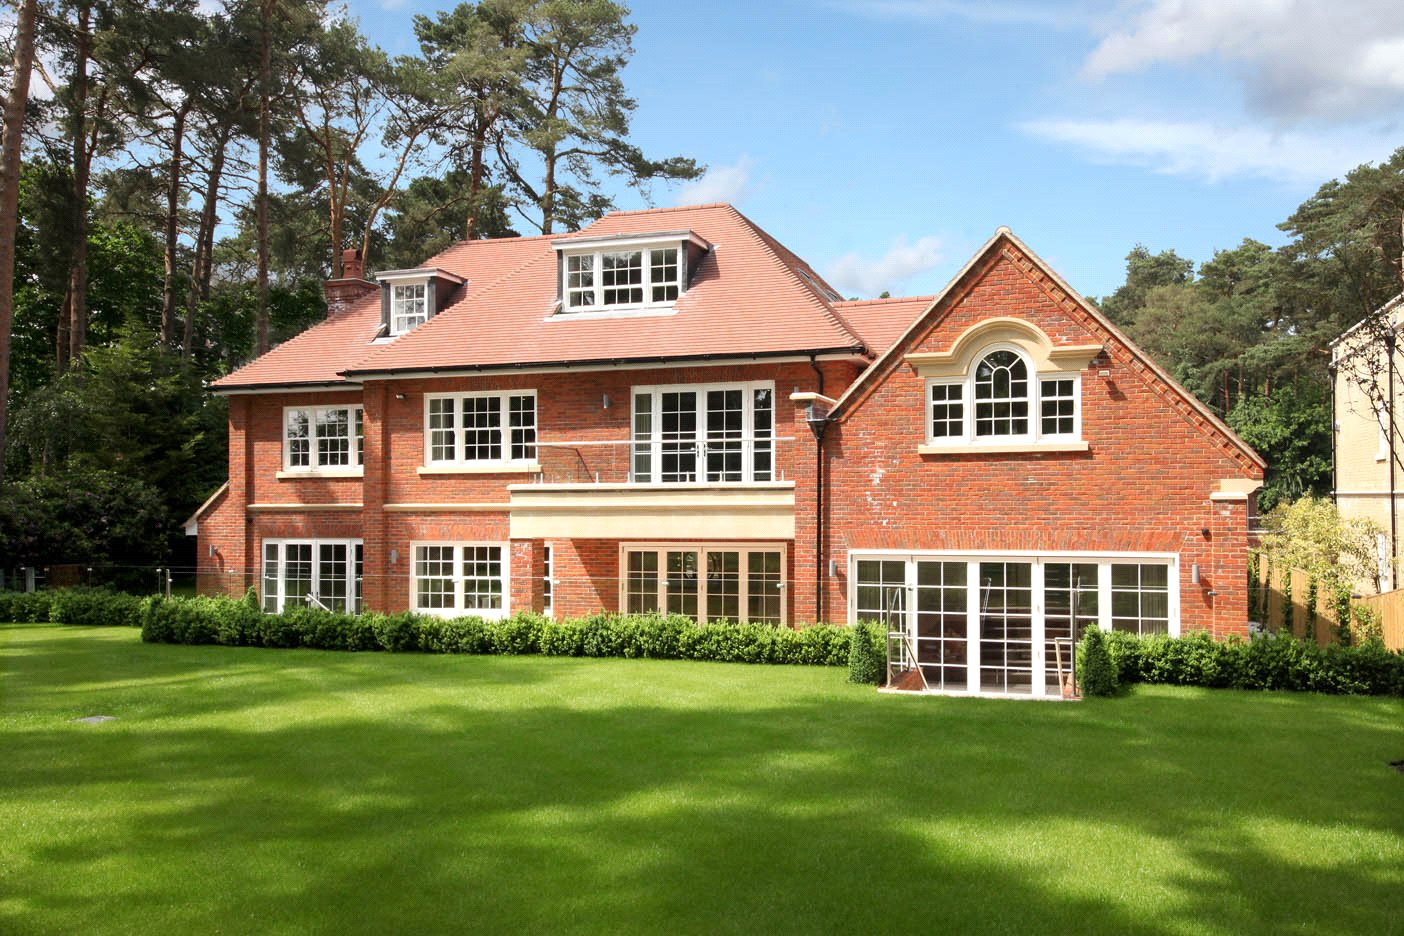 Single Family Home for Sale at The Glade, Woodend Drive, Sunninghill, Berkshire, SL5 Sunninghill, England